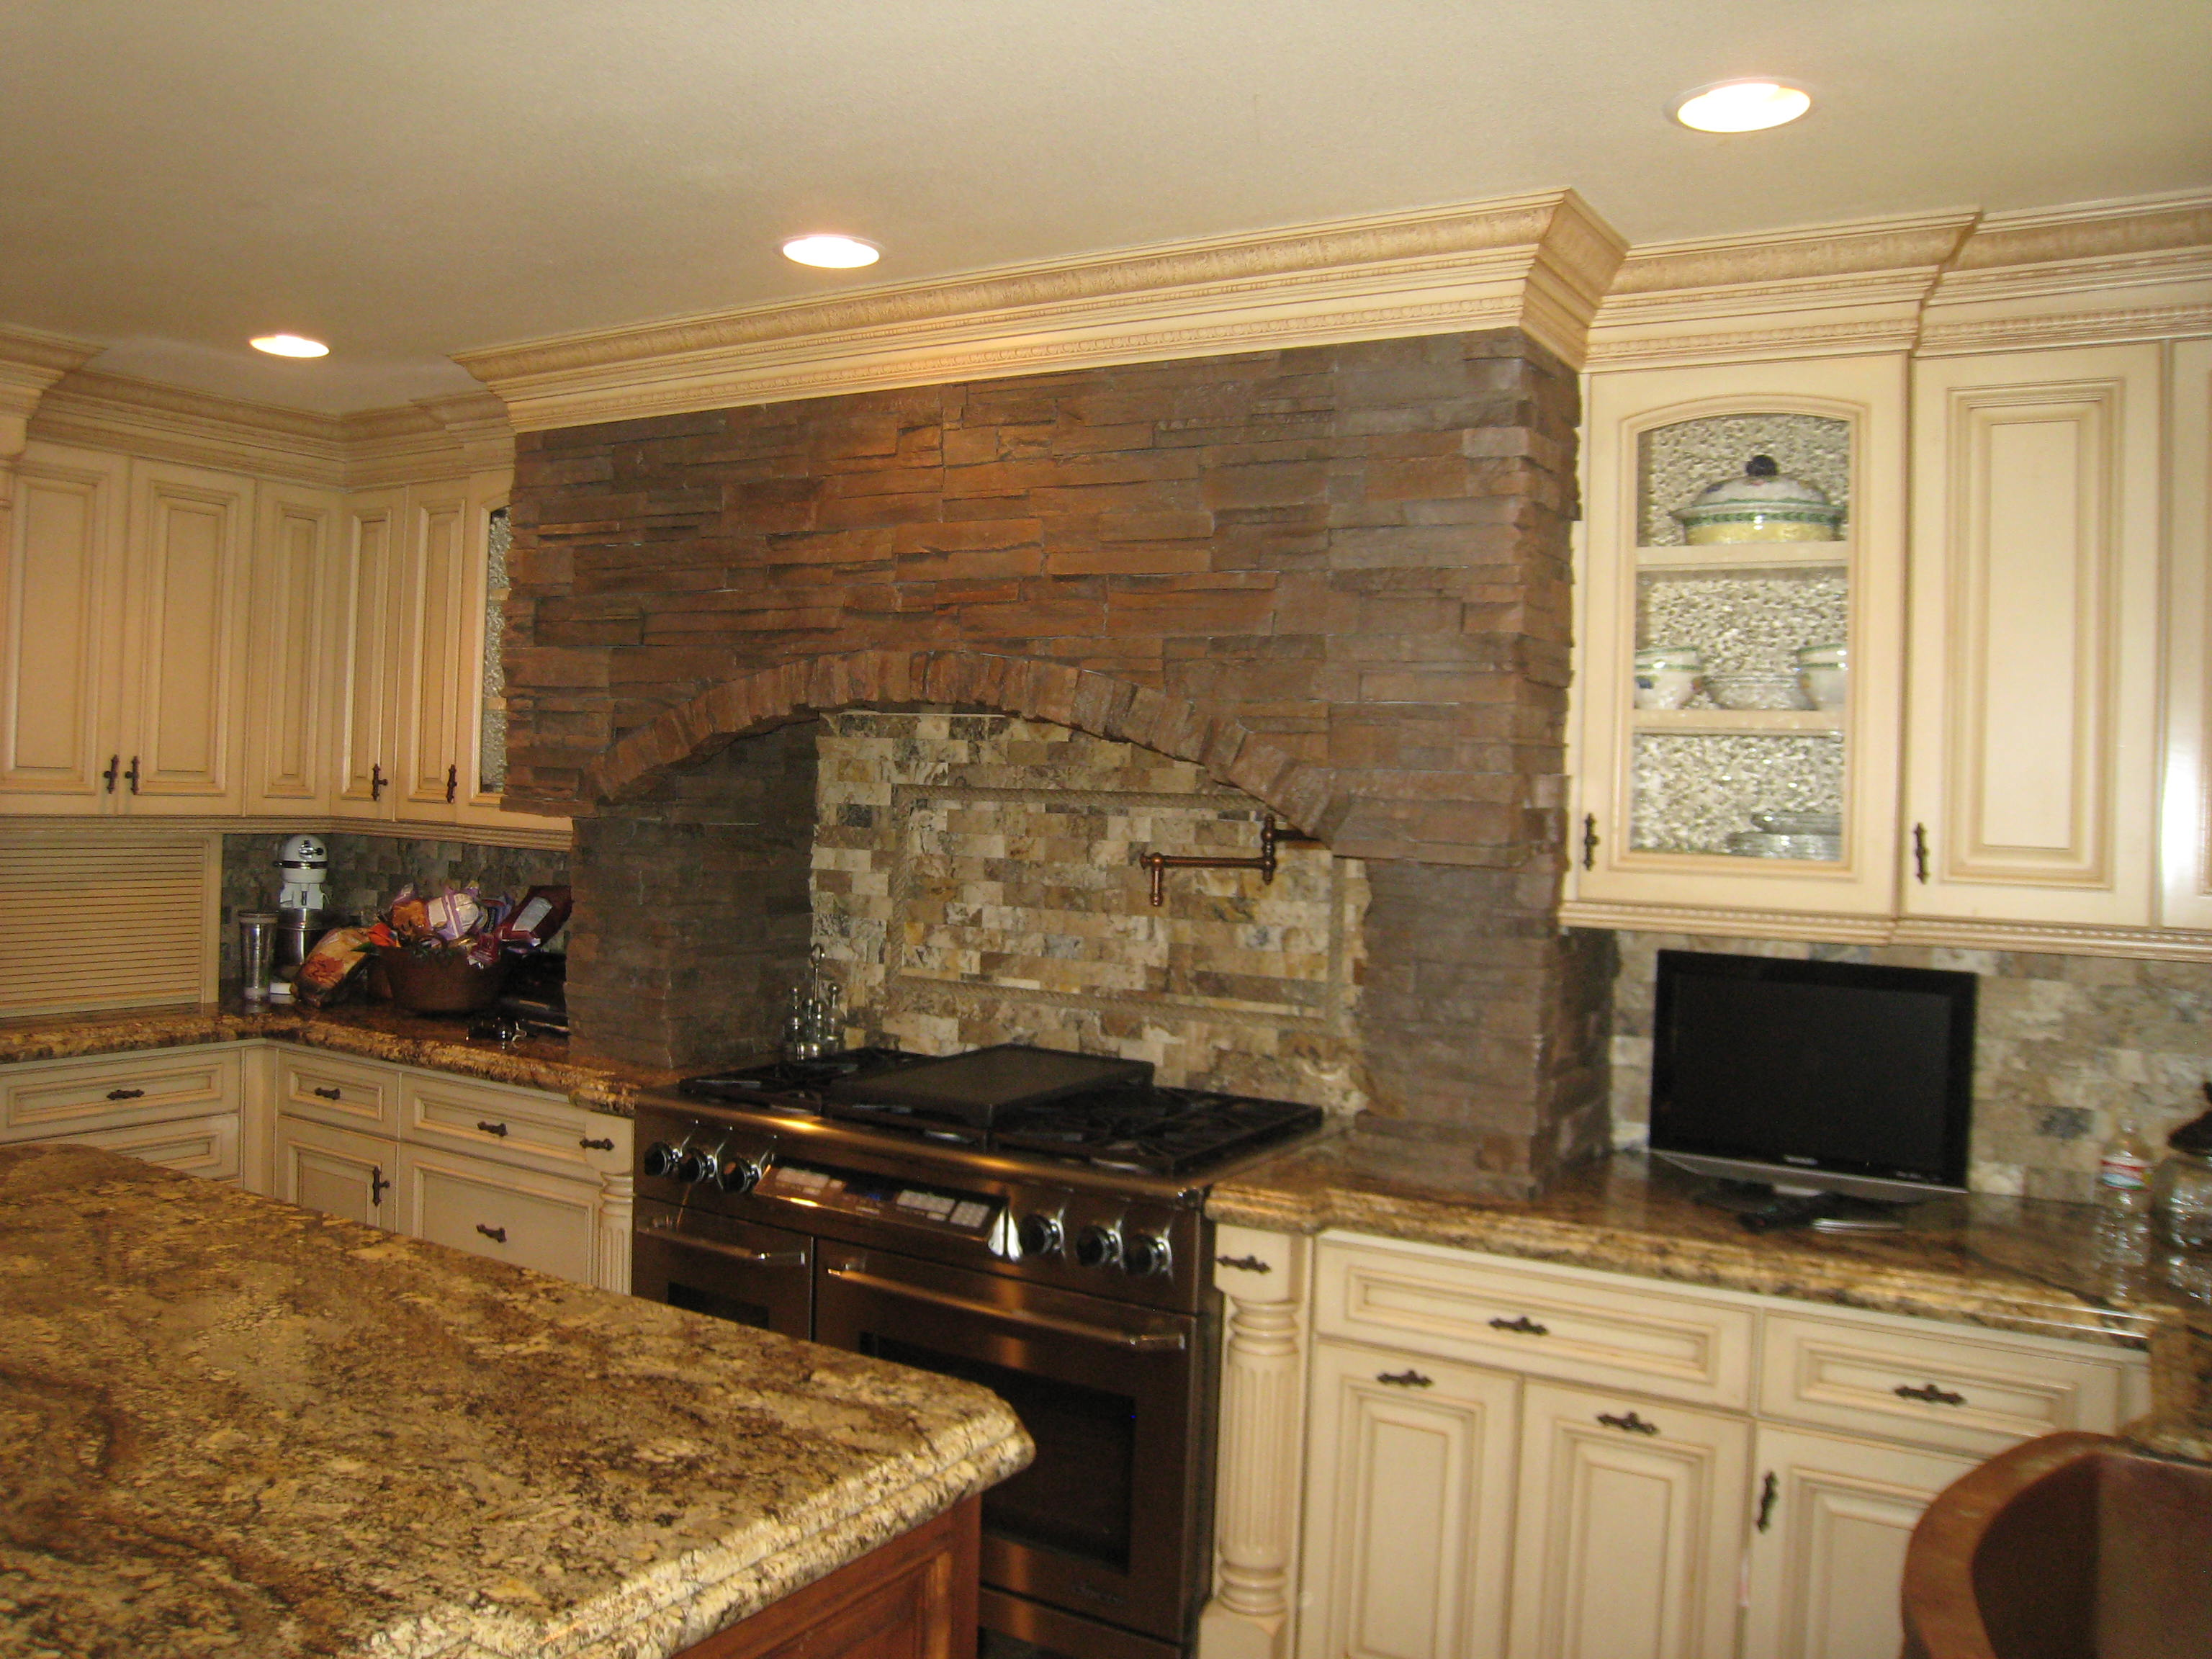 Kitchen Remodel Los Angeles Kitchen Remodels Los Angeles General Contractor Trans National